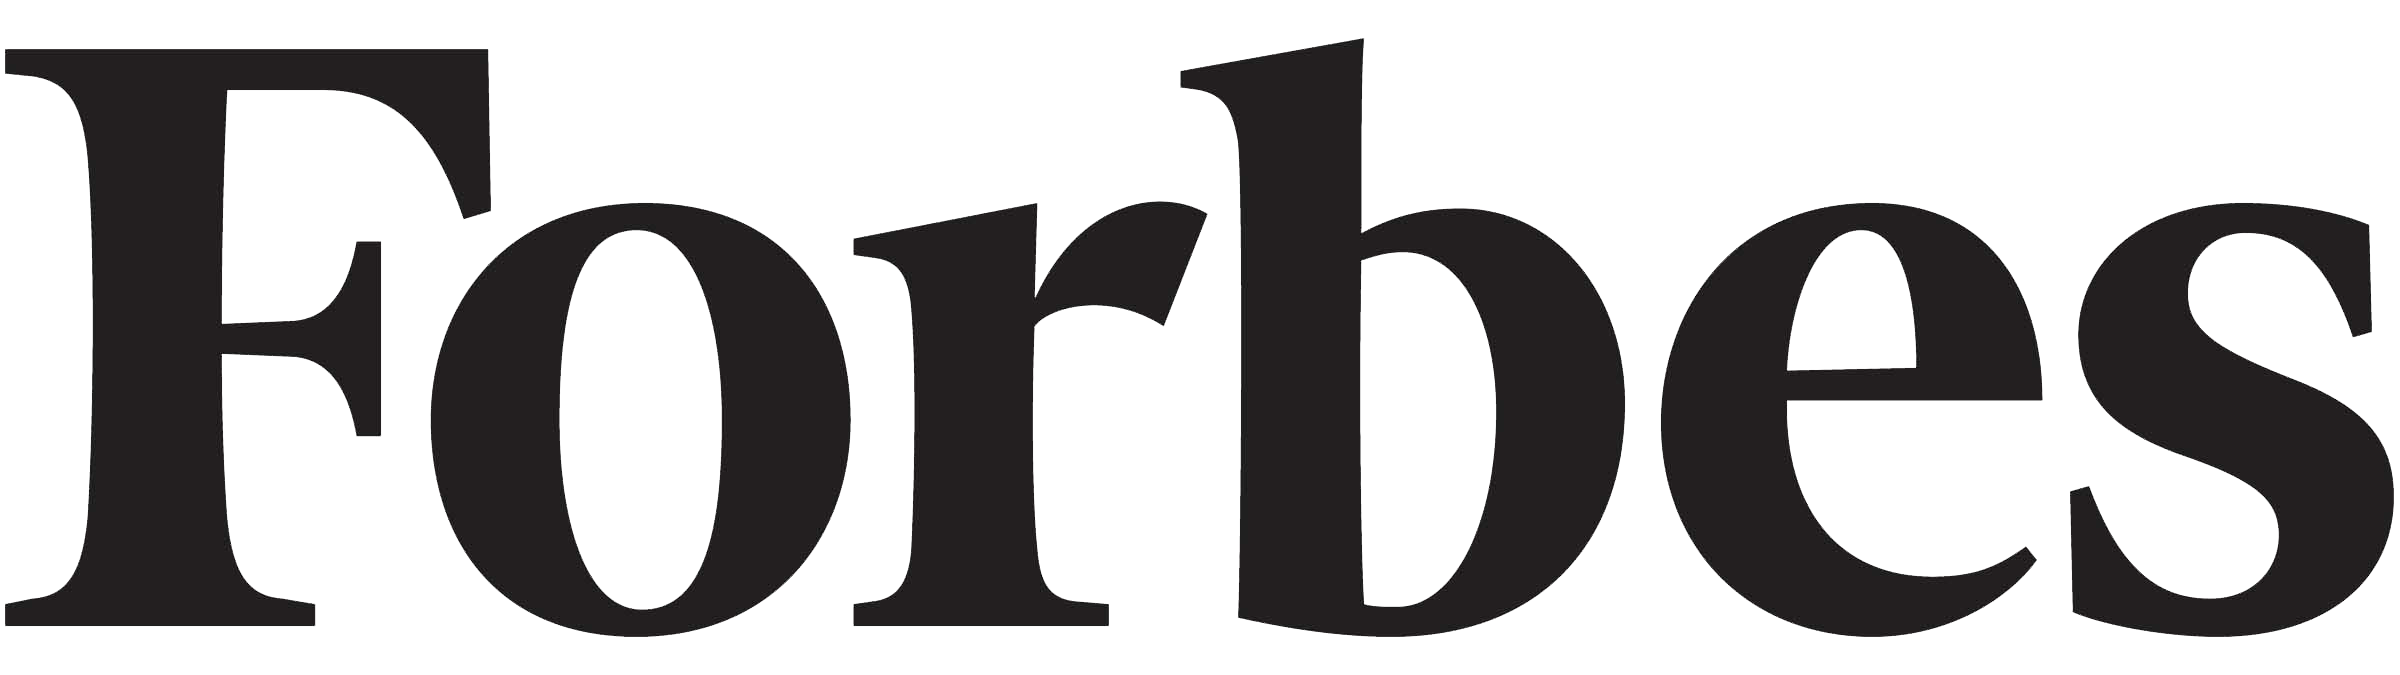 forbes-logo (1).png